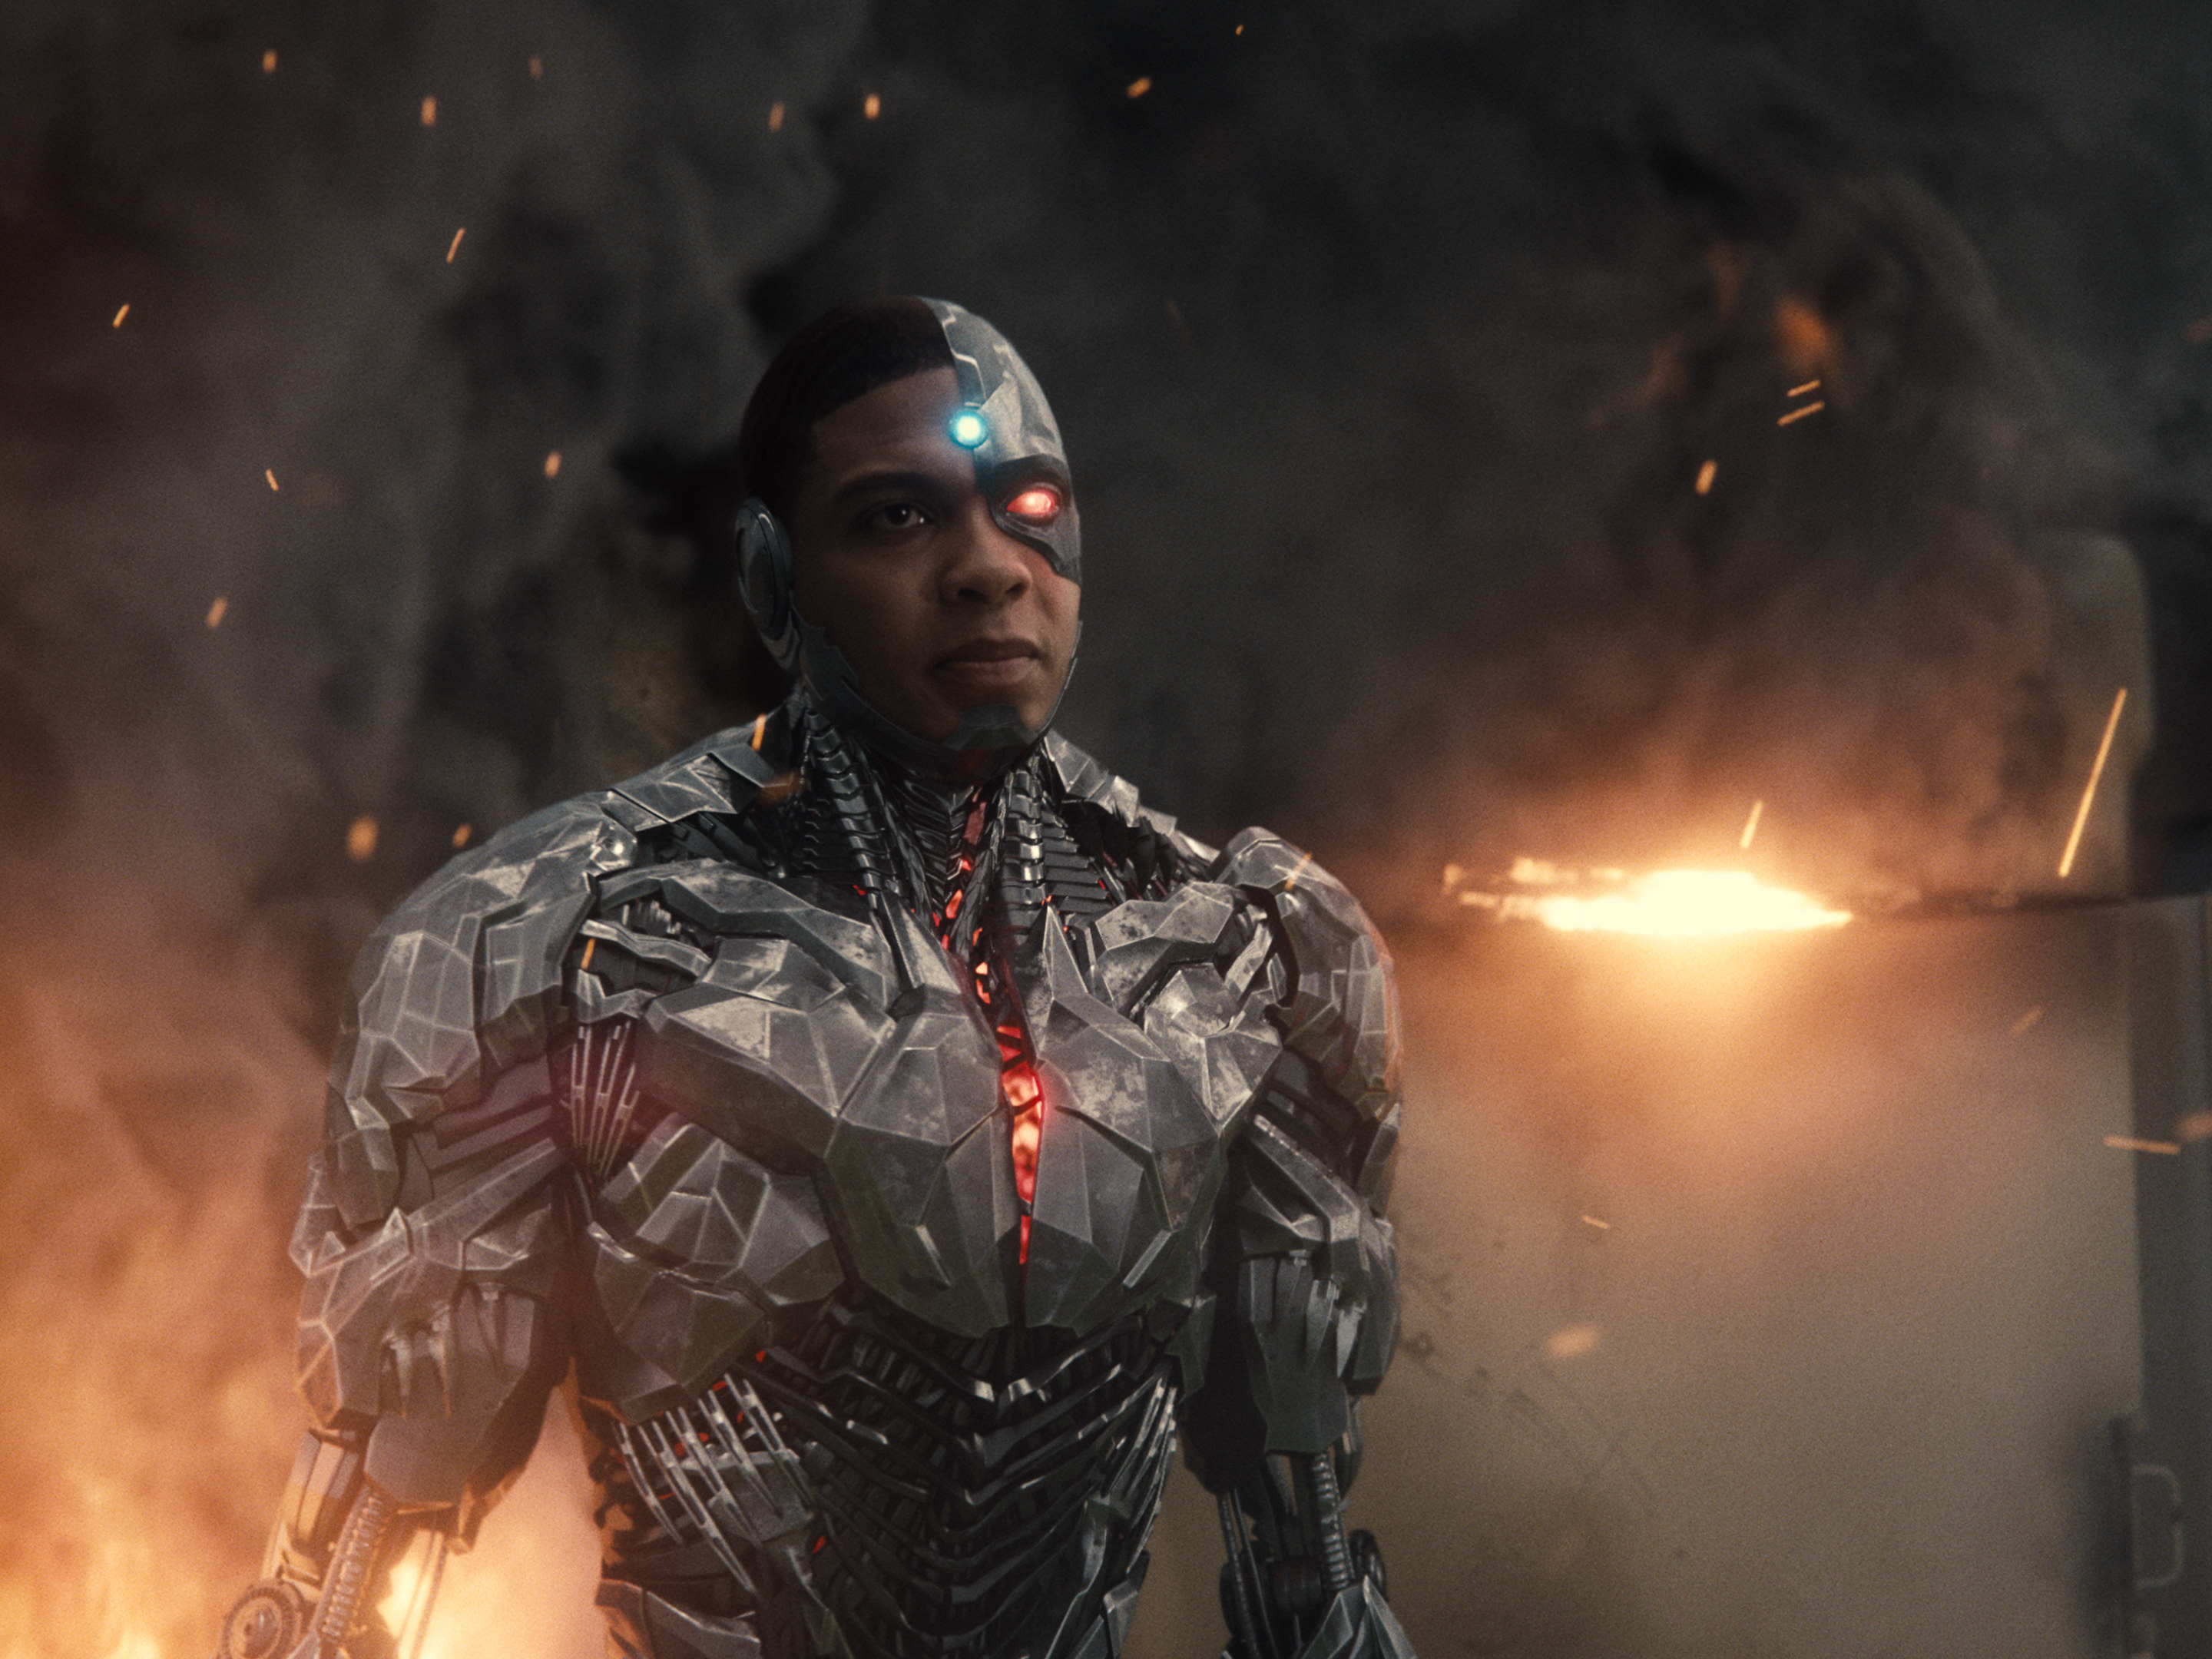 Cyborg stands out in the Snyder Cut